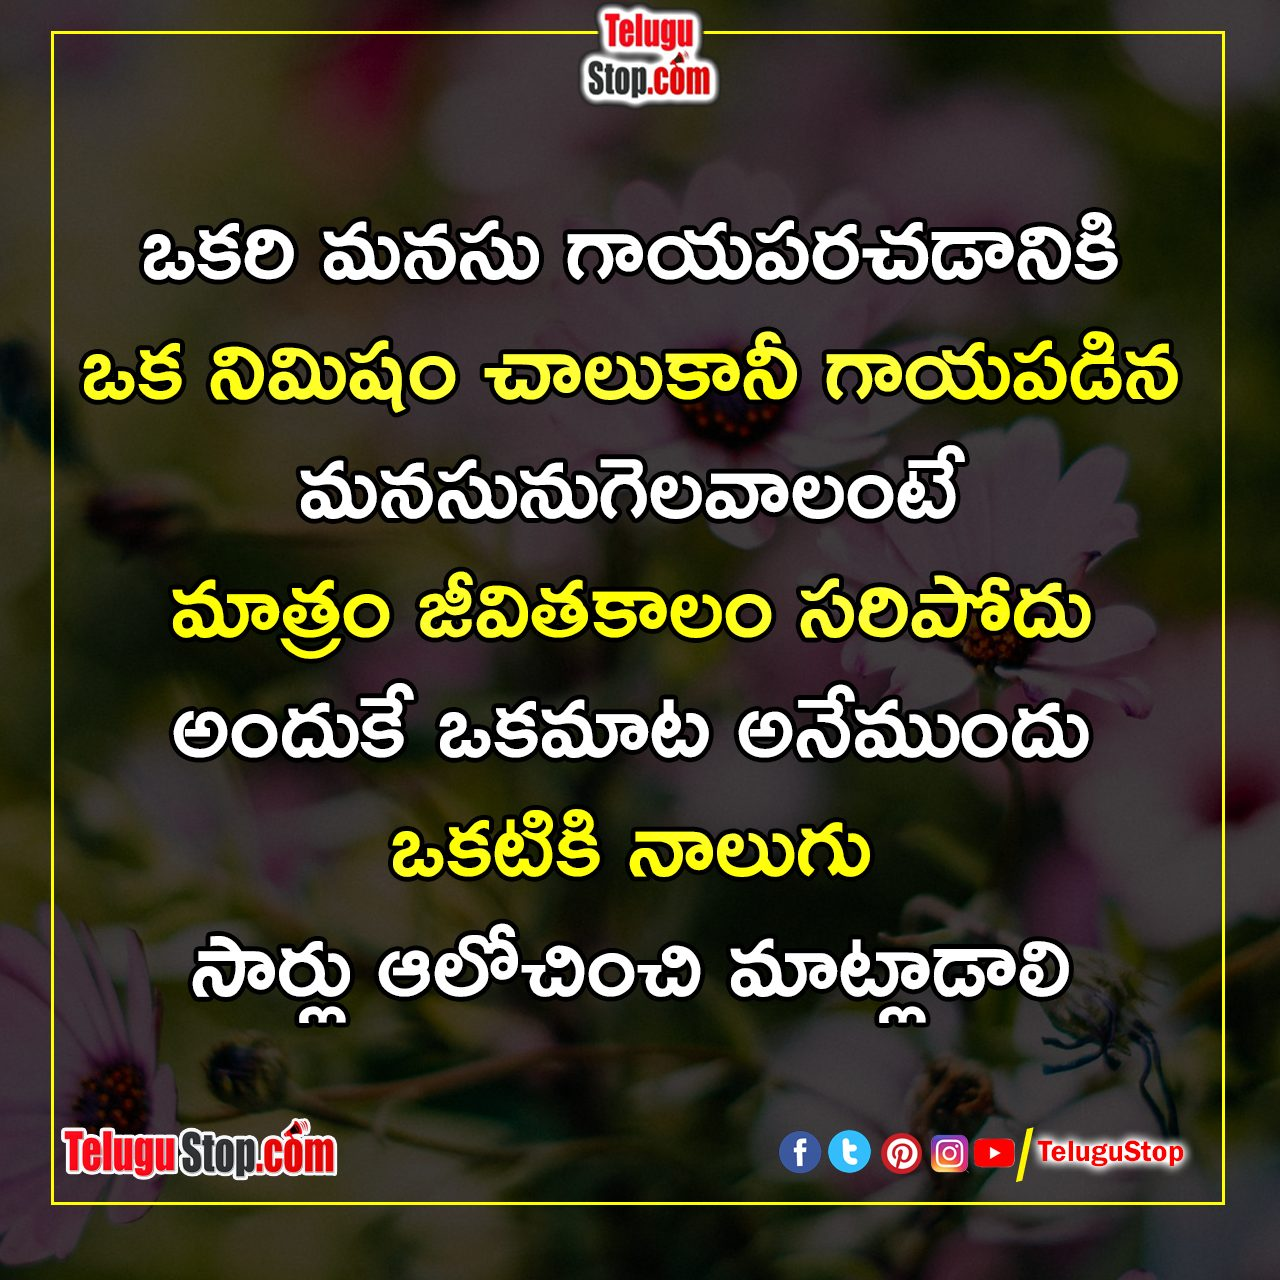 Telugu Anger Is A Very Dangerous Inspirational Quotes, If It Is Happy, If You Are Silent Your Value Increases Inspirational Quotes, If You Want To Change Everyone Inspirational Quotes, Our Life Is Good Inspiriational Quotes-Telugu Daily Quotes - Inspirational/Motivational/Love/Friendship/Good Morning Quote